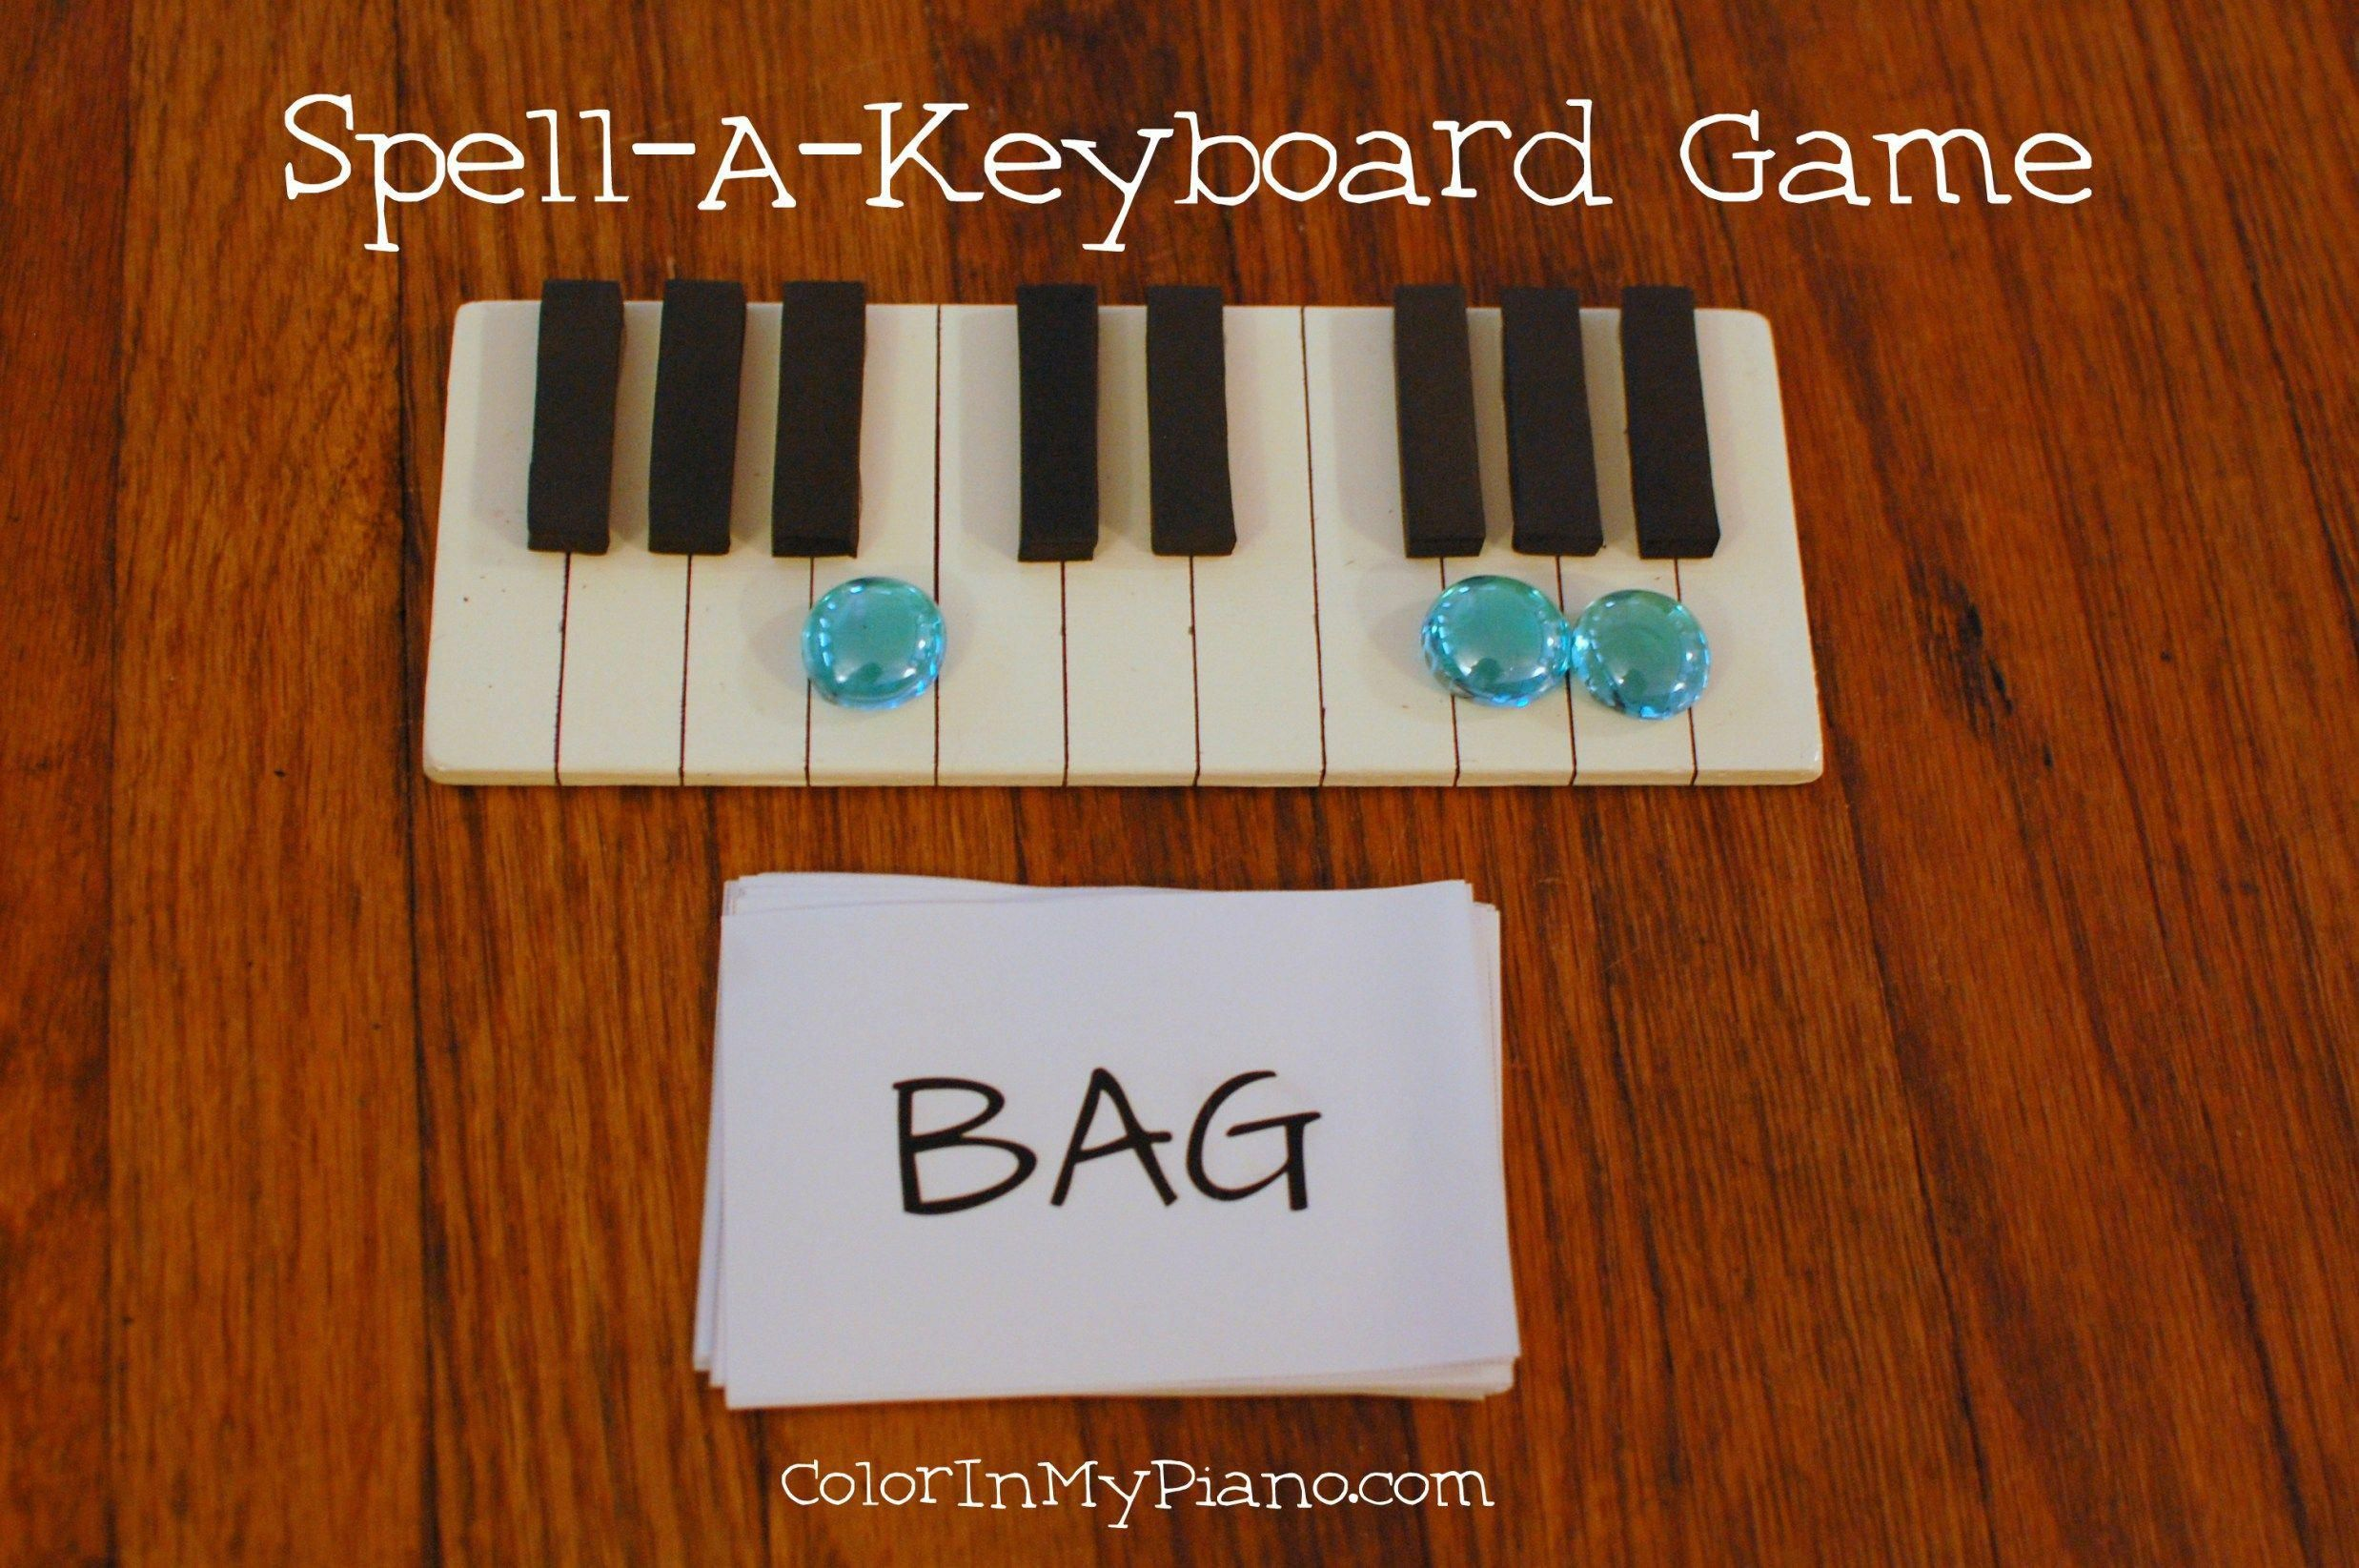 SpellAKeyboard Game Music lessons for kids, Piano